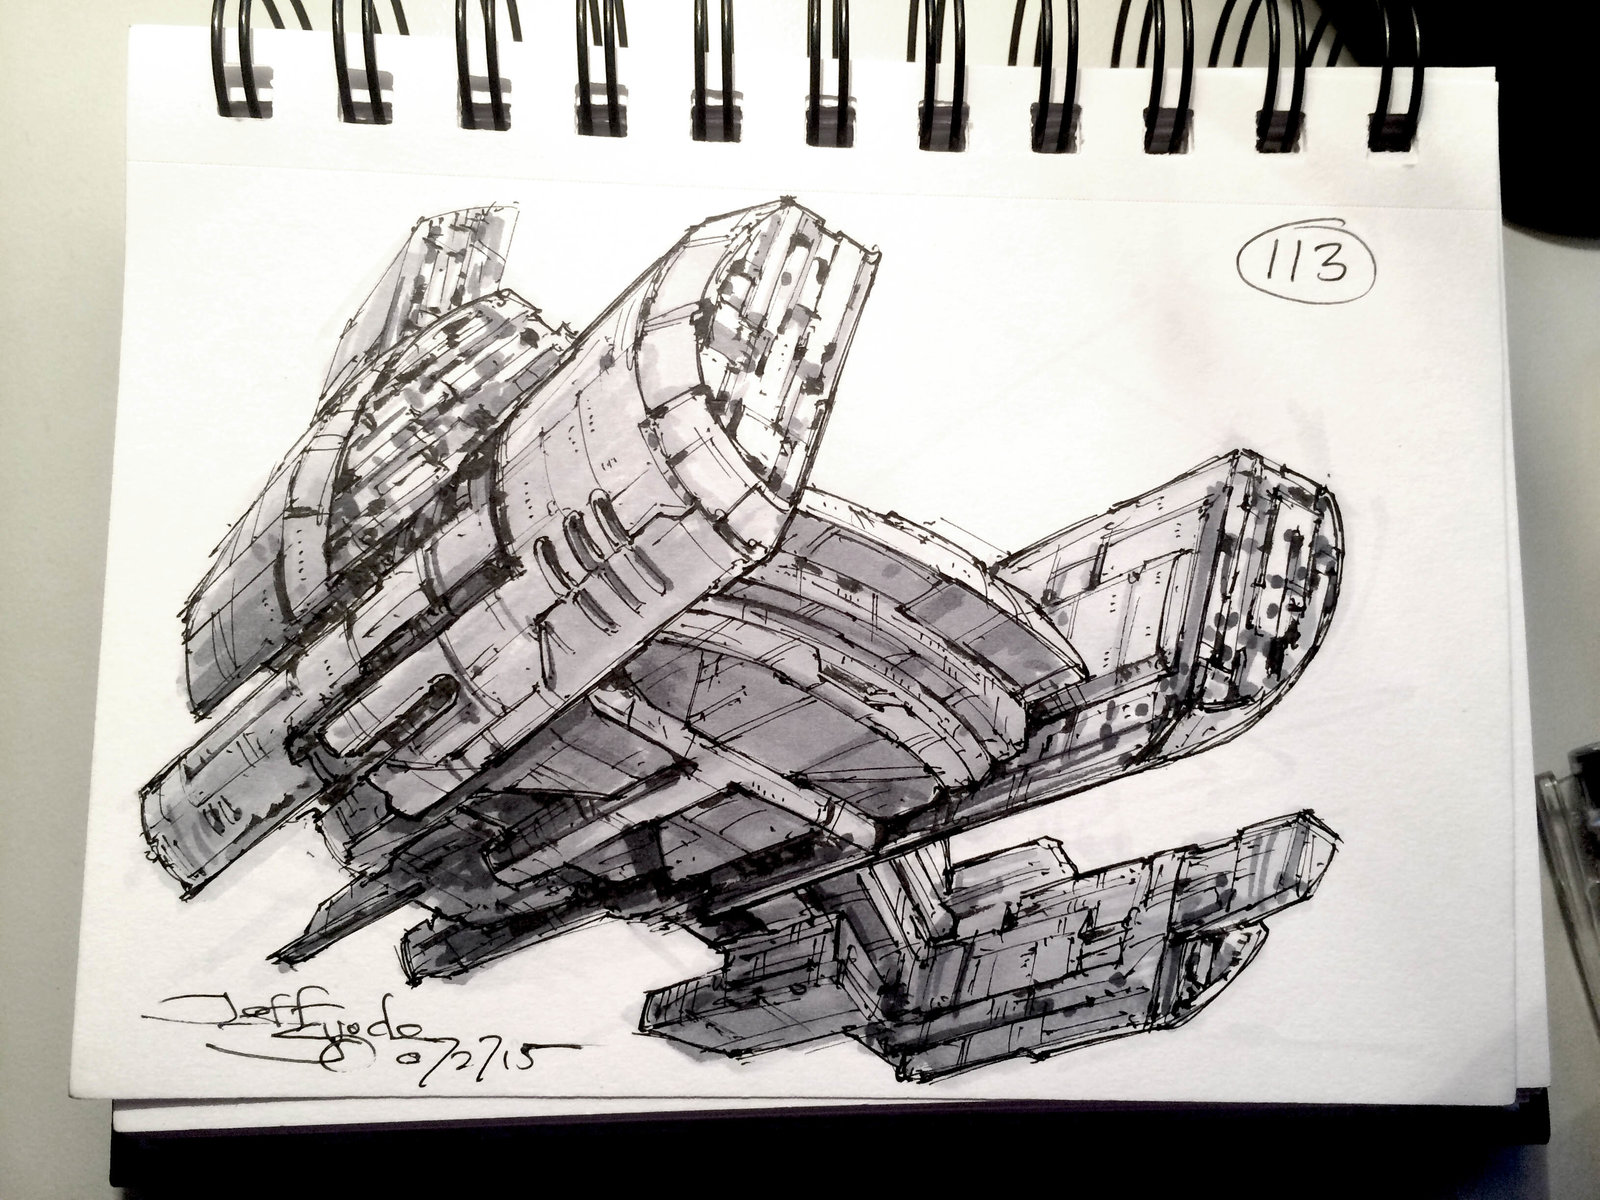 SpaceshipADay 113